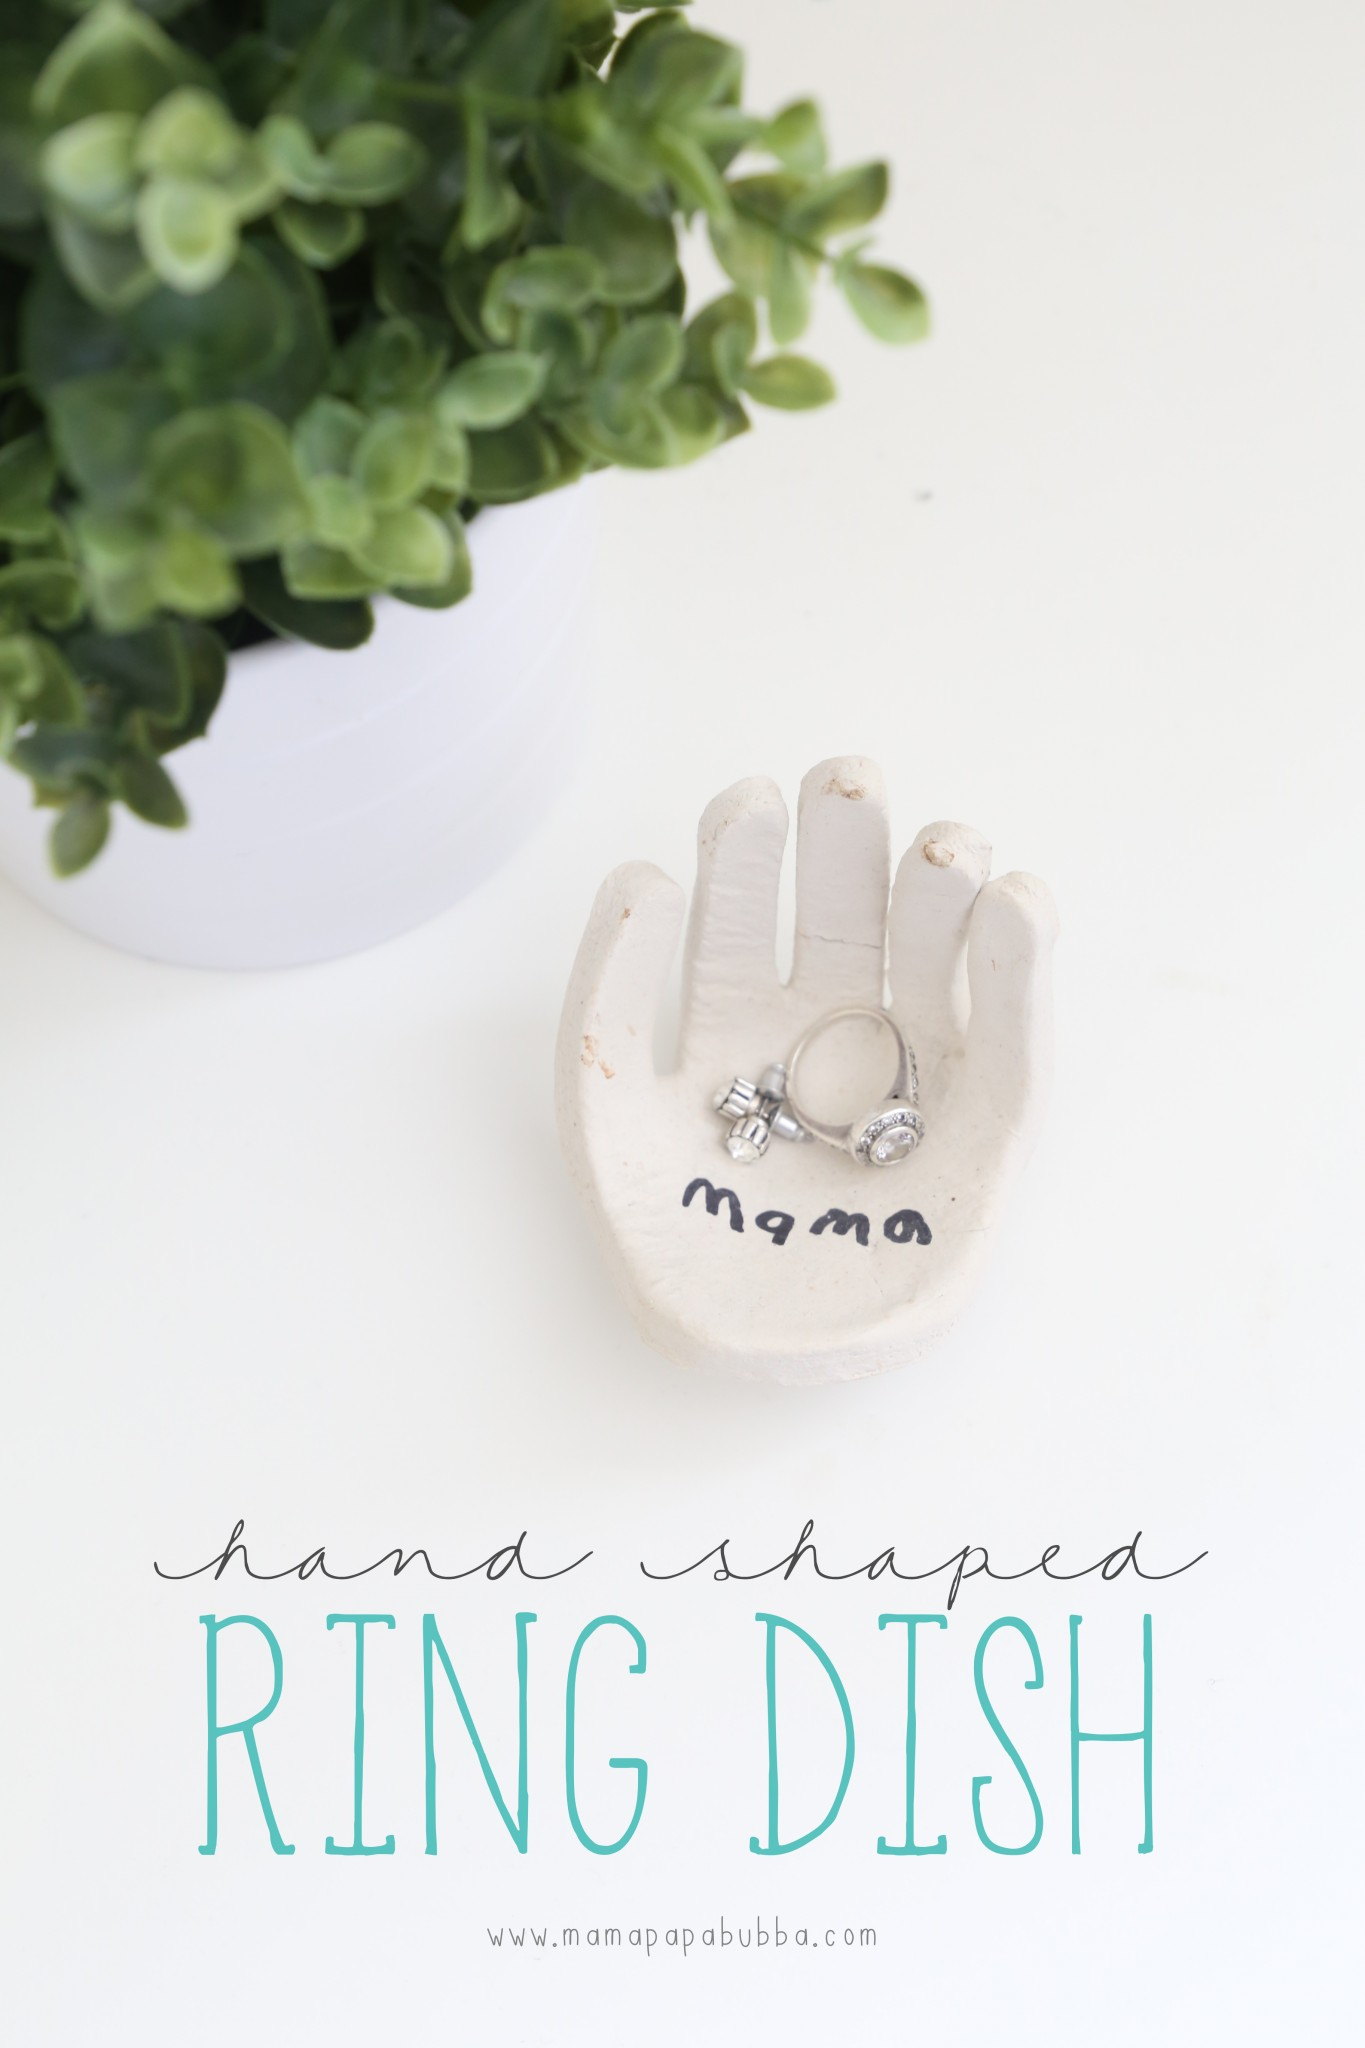 DIY: Upcycled Mother's Day Gifts ideas (avoid consuming!) | ecogreenlove